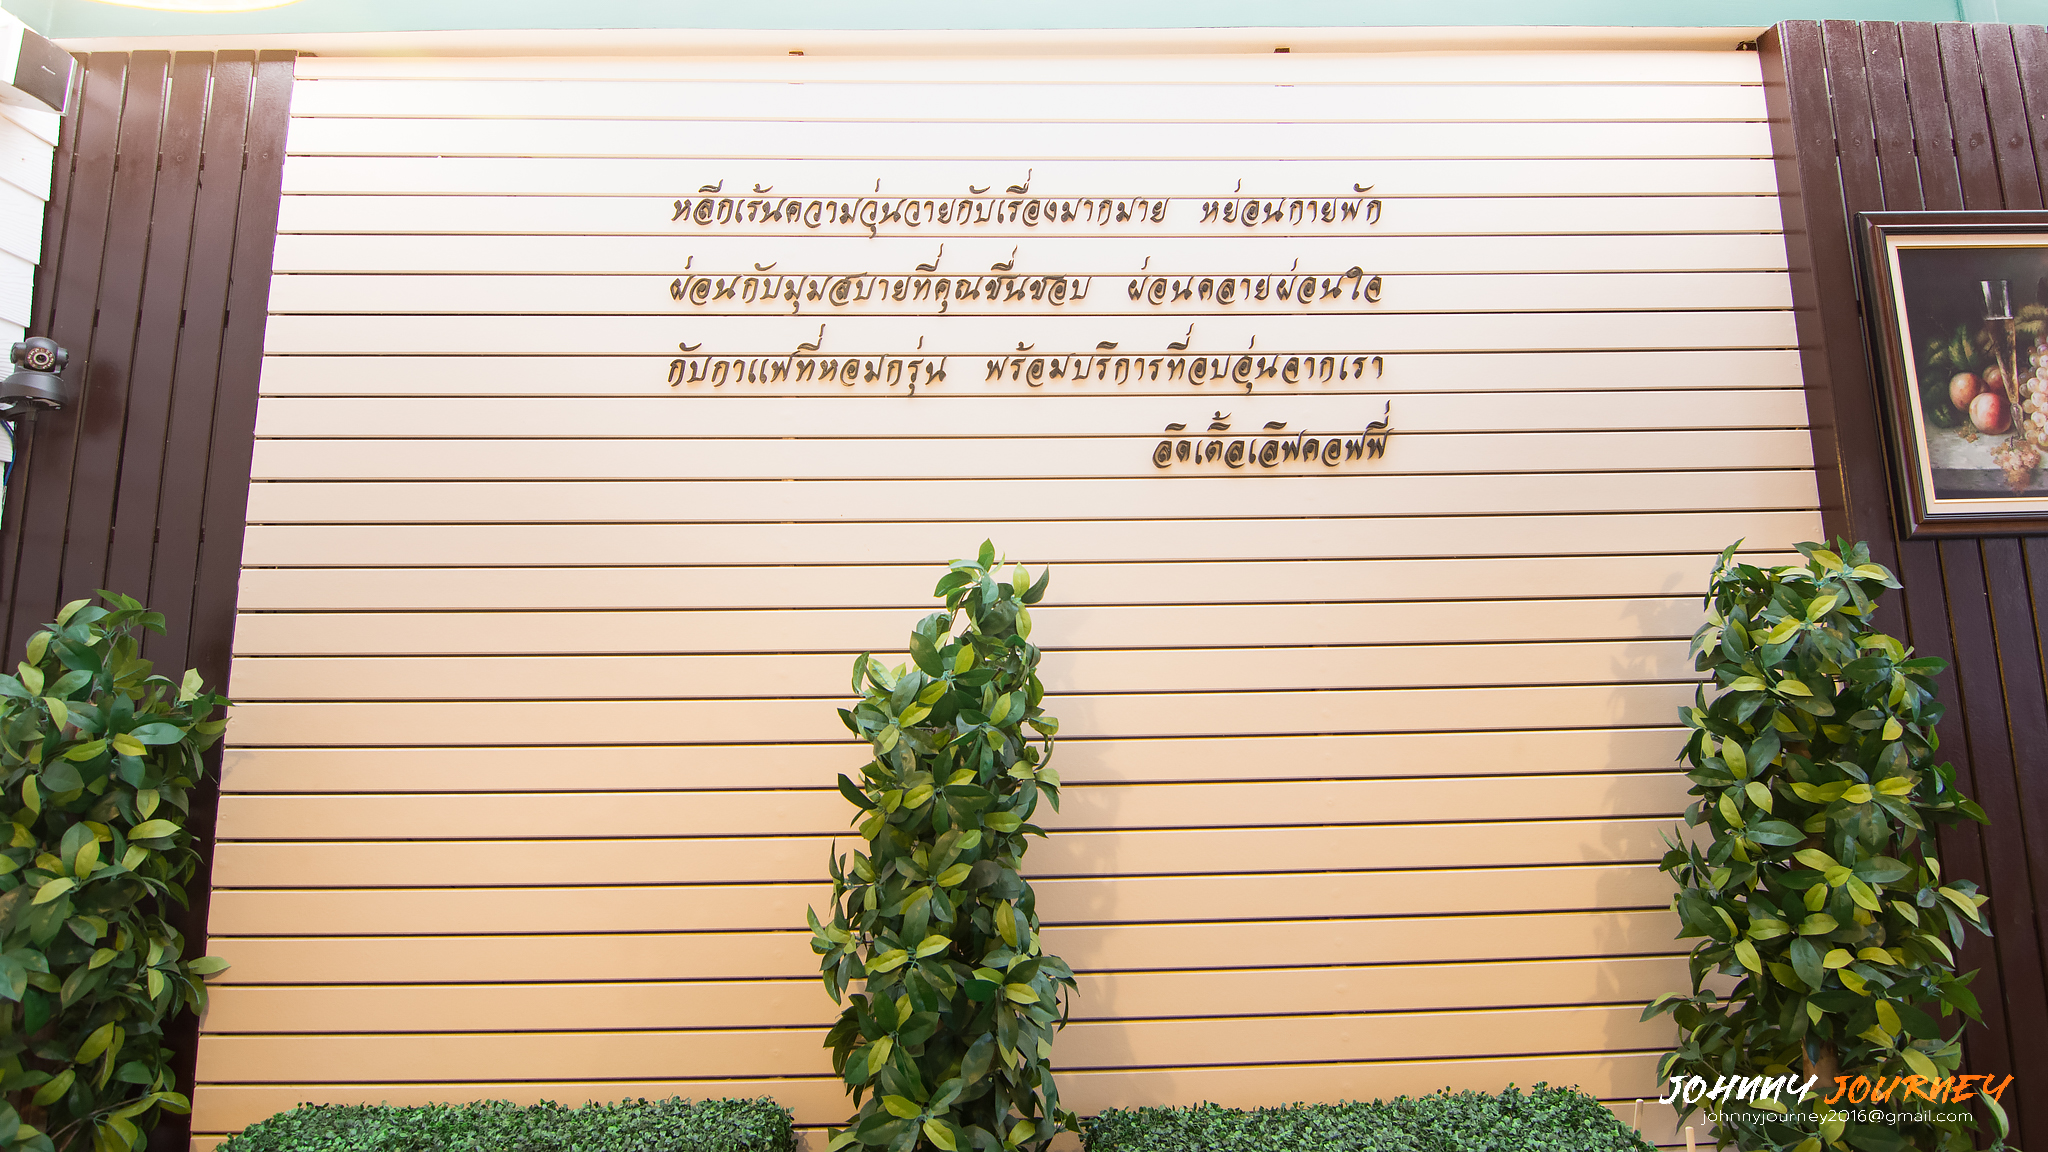 Cafe Little Love Udon Thani | Udon Thani Info Directory Map